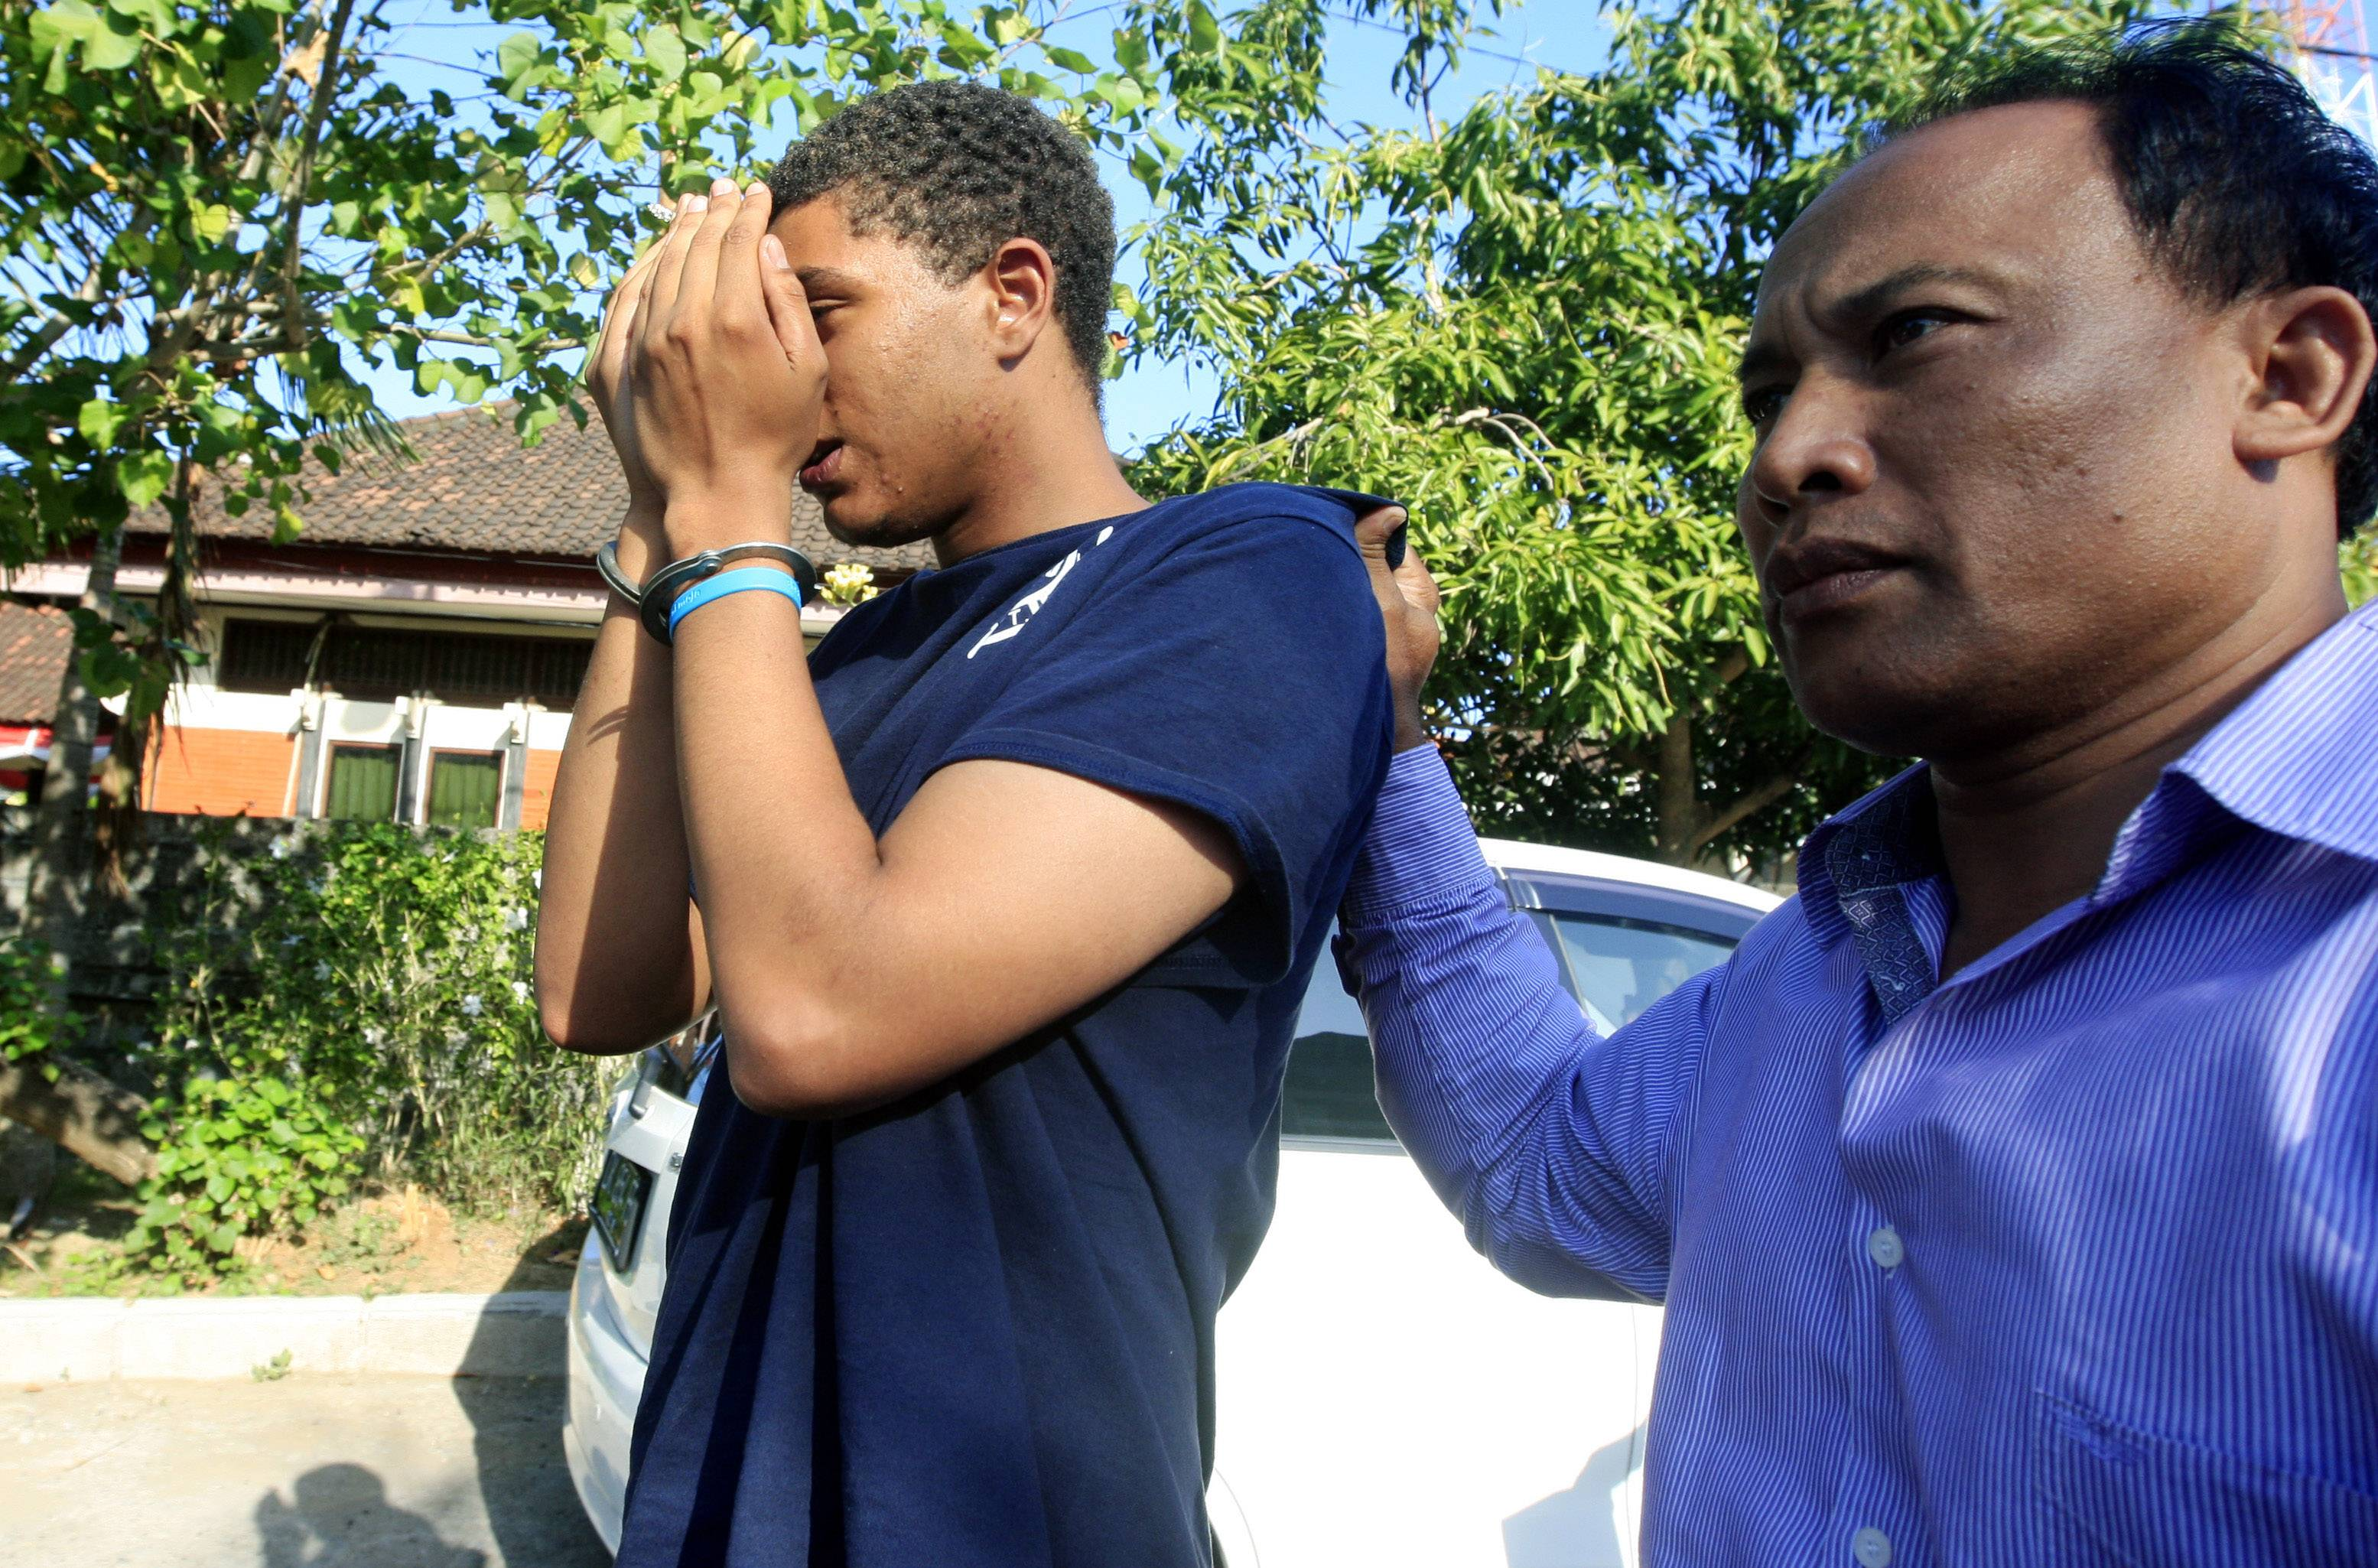 An Indonesian police officer escorts Tommy Schaefer, left, as he is brought Wednesday to a police station for questioning in relation to the death of his girlfriend's mother, in Bali, Indonesia. The body of a 62-year-old American woman was found stuffed inside a suitcase on the Indonesian resort island of Bali. Police arrested Schaefer and Heather Mack, the victim's daughter, in relation to the death. Sheila von Wiese Mack's body was found Tuesday inside the trunk of a taxi parked in front of an upscale hotel in Bali's Nusa Dua area.